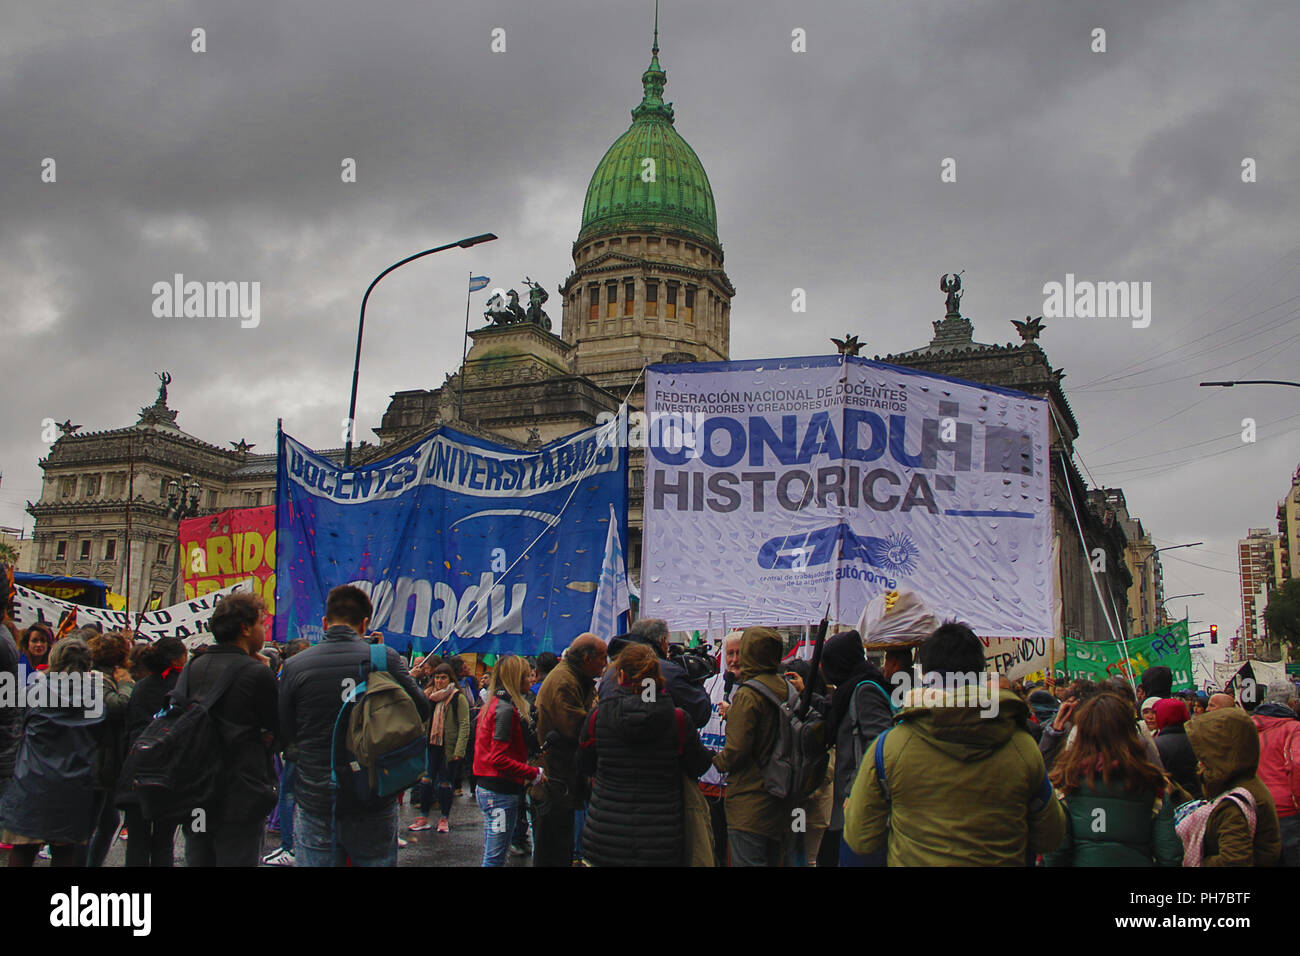 Buenos Aires, Argentina. 30th Aug 2018. Thousand of people, specially students and teachers of many Public Universities claim for a raise of budget to goverment of President Macri on Buenos Aires, Argentina. (Photo: Néstor J. Beremblum / Alamy News) Credit: Néstor J. Beremblum/Alamy Live News Credit: Néstor J. Beremblum/Alamy Live News - Stock Image